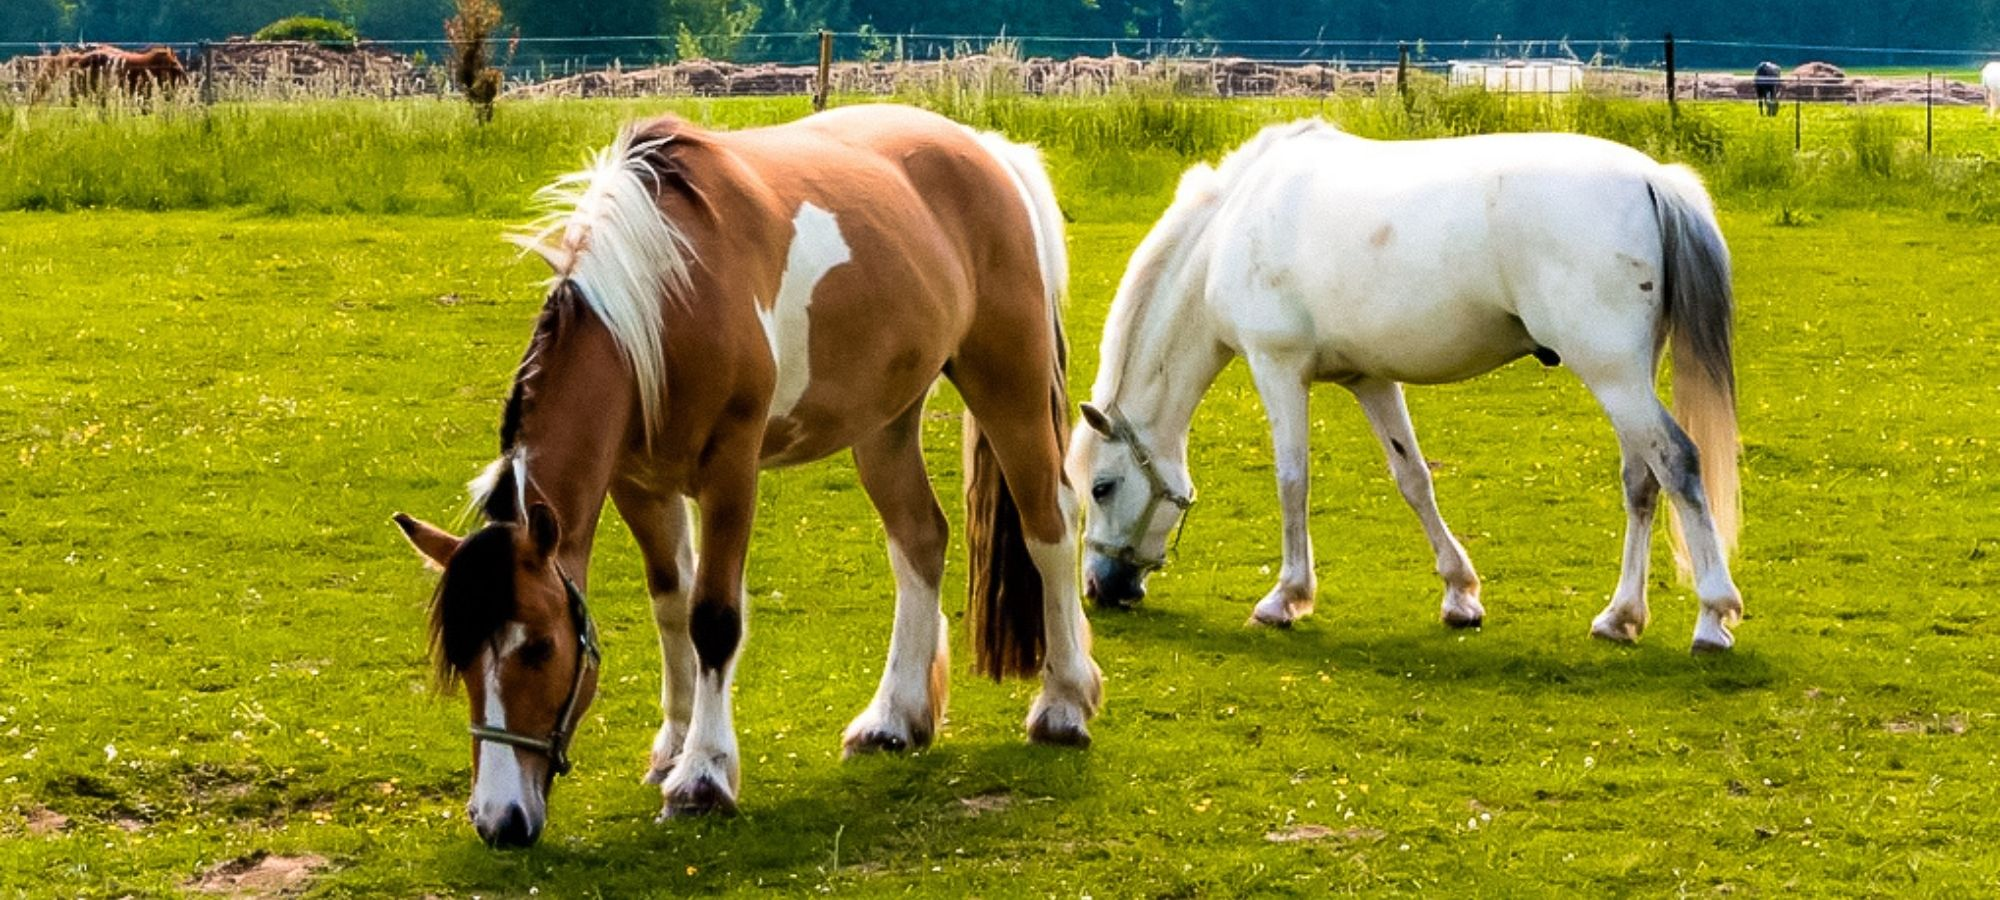 Two horses in a field eating grass in an animal shelter, Le Rêve d'Aby, Belgium